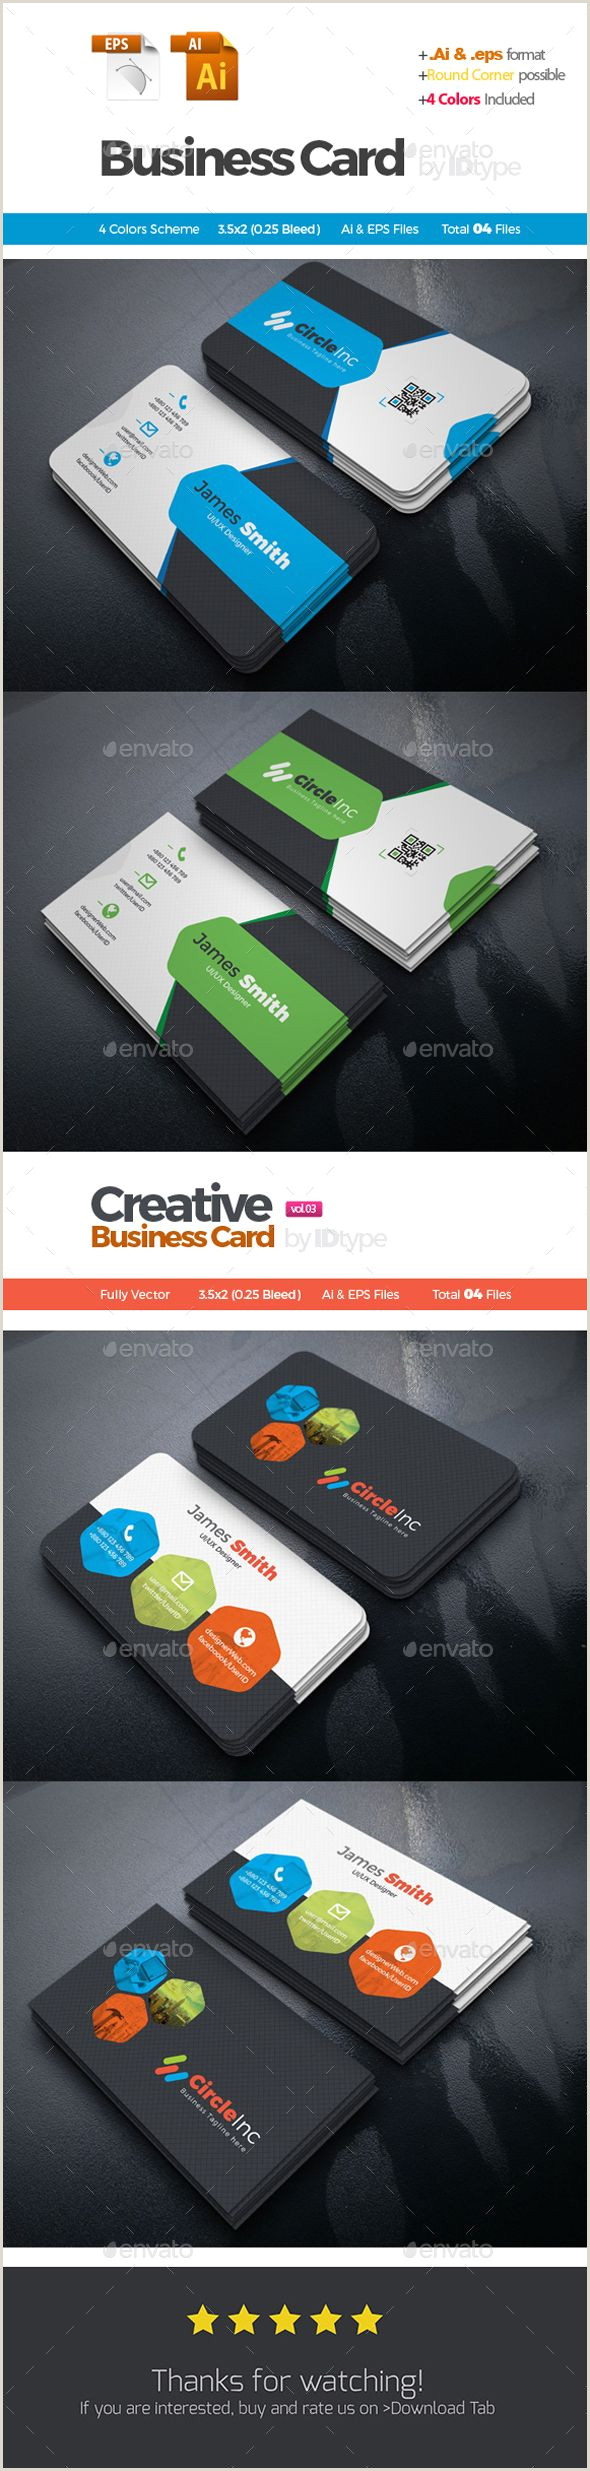 Business Card Color Schemes Business Card Bundle 2 In 1 Corporate Business Cards